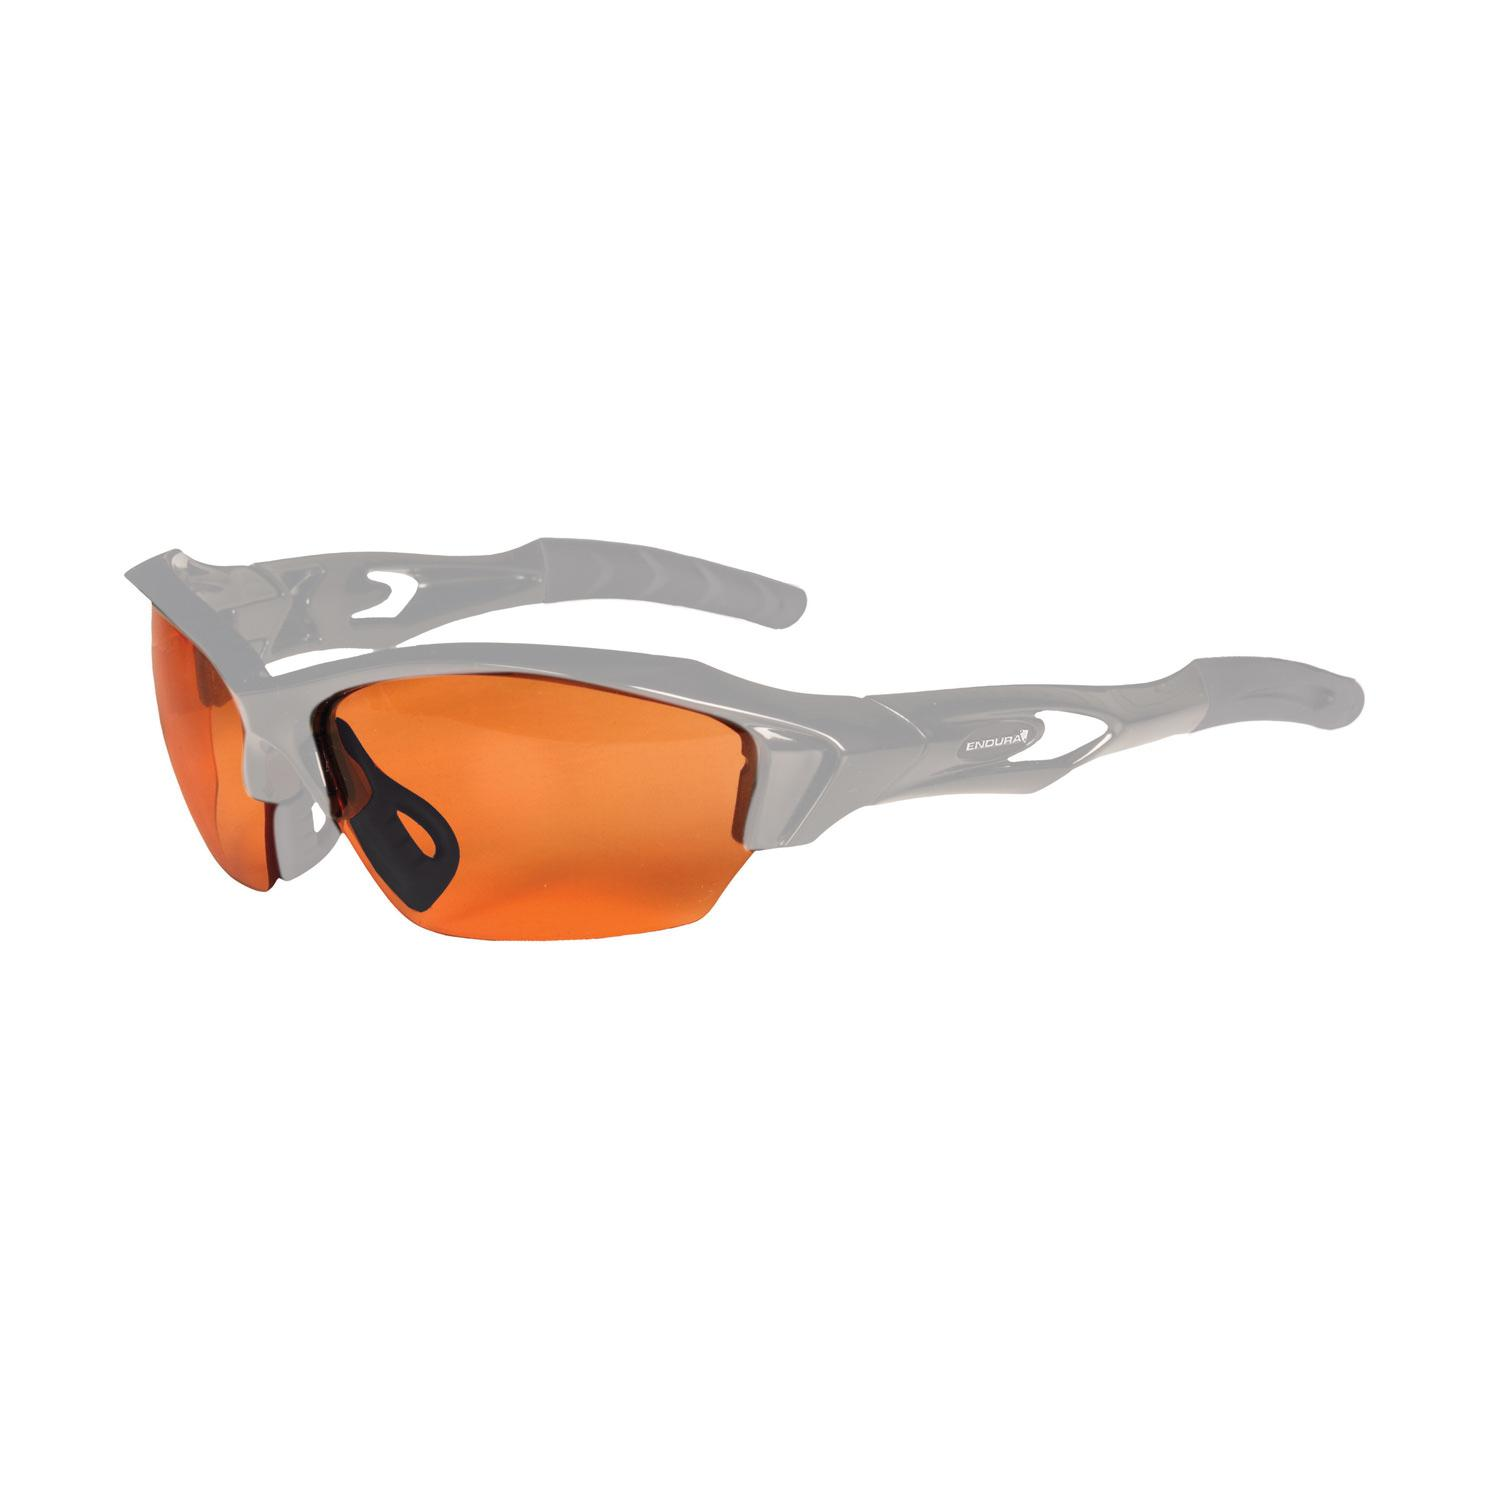 guppy-glasses-3-sets-of-lenses-clear-persimmon-and-smoke